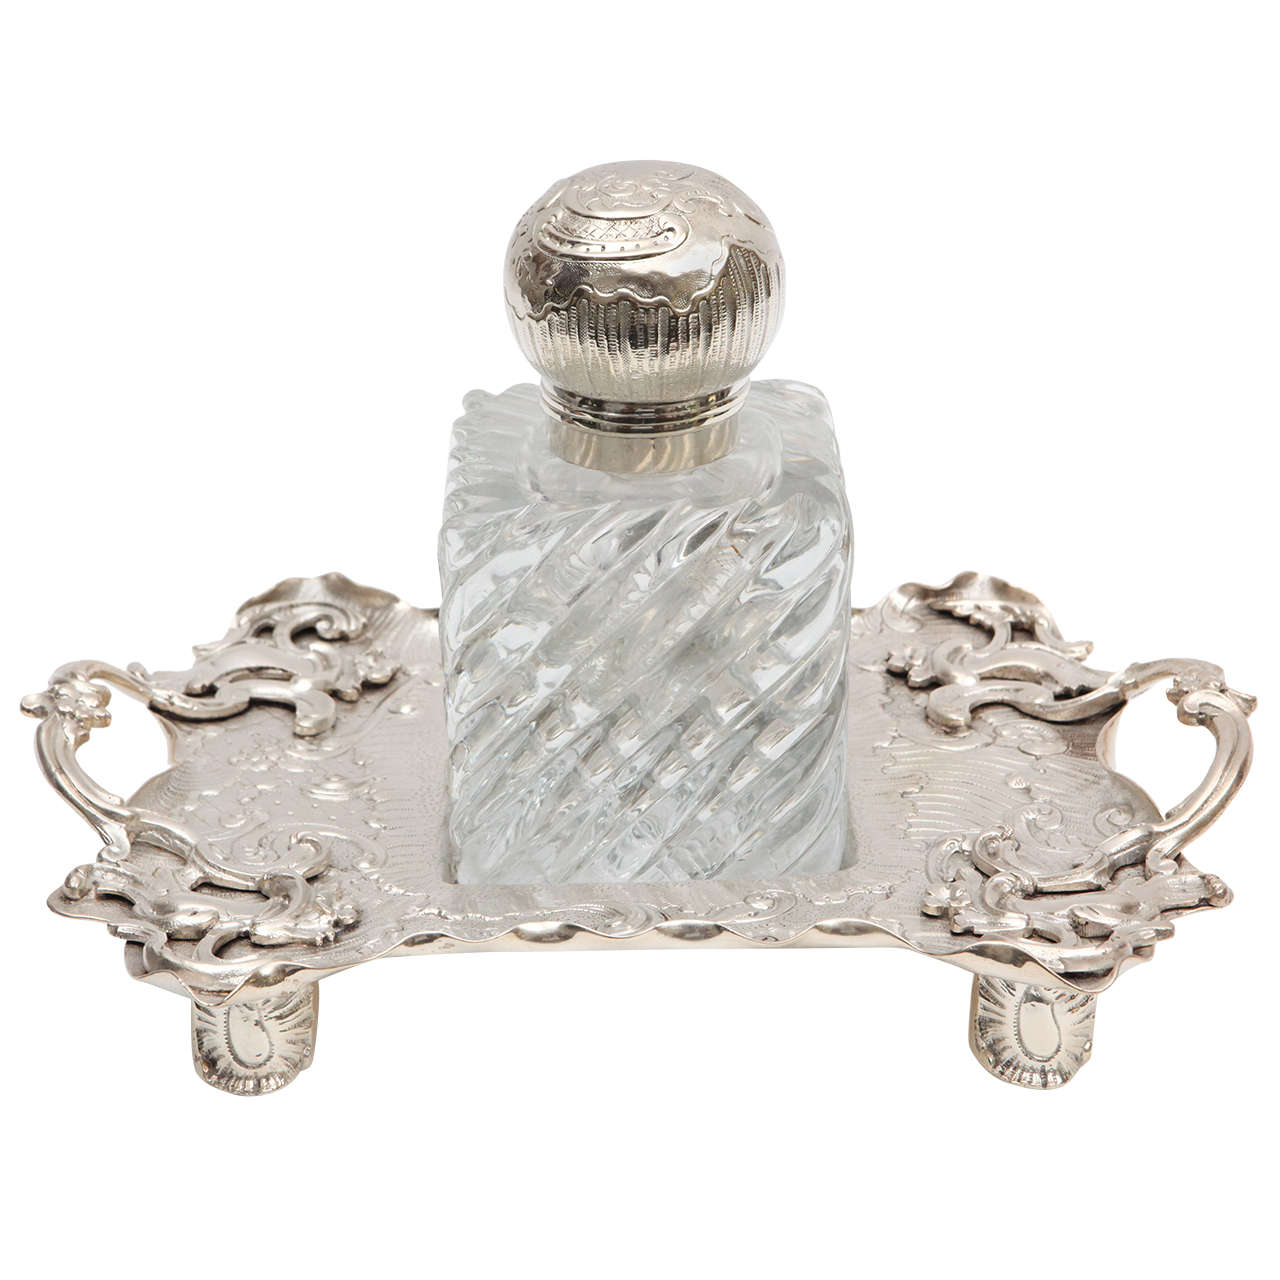 1900s English Crystal and Silver Plated Sheffield Inkwell on Tray